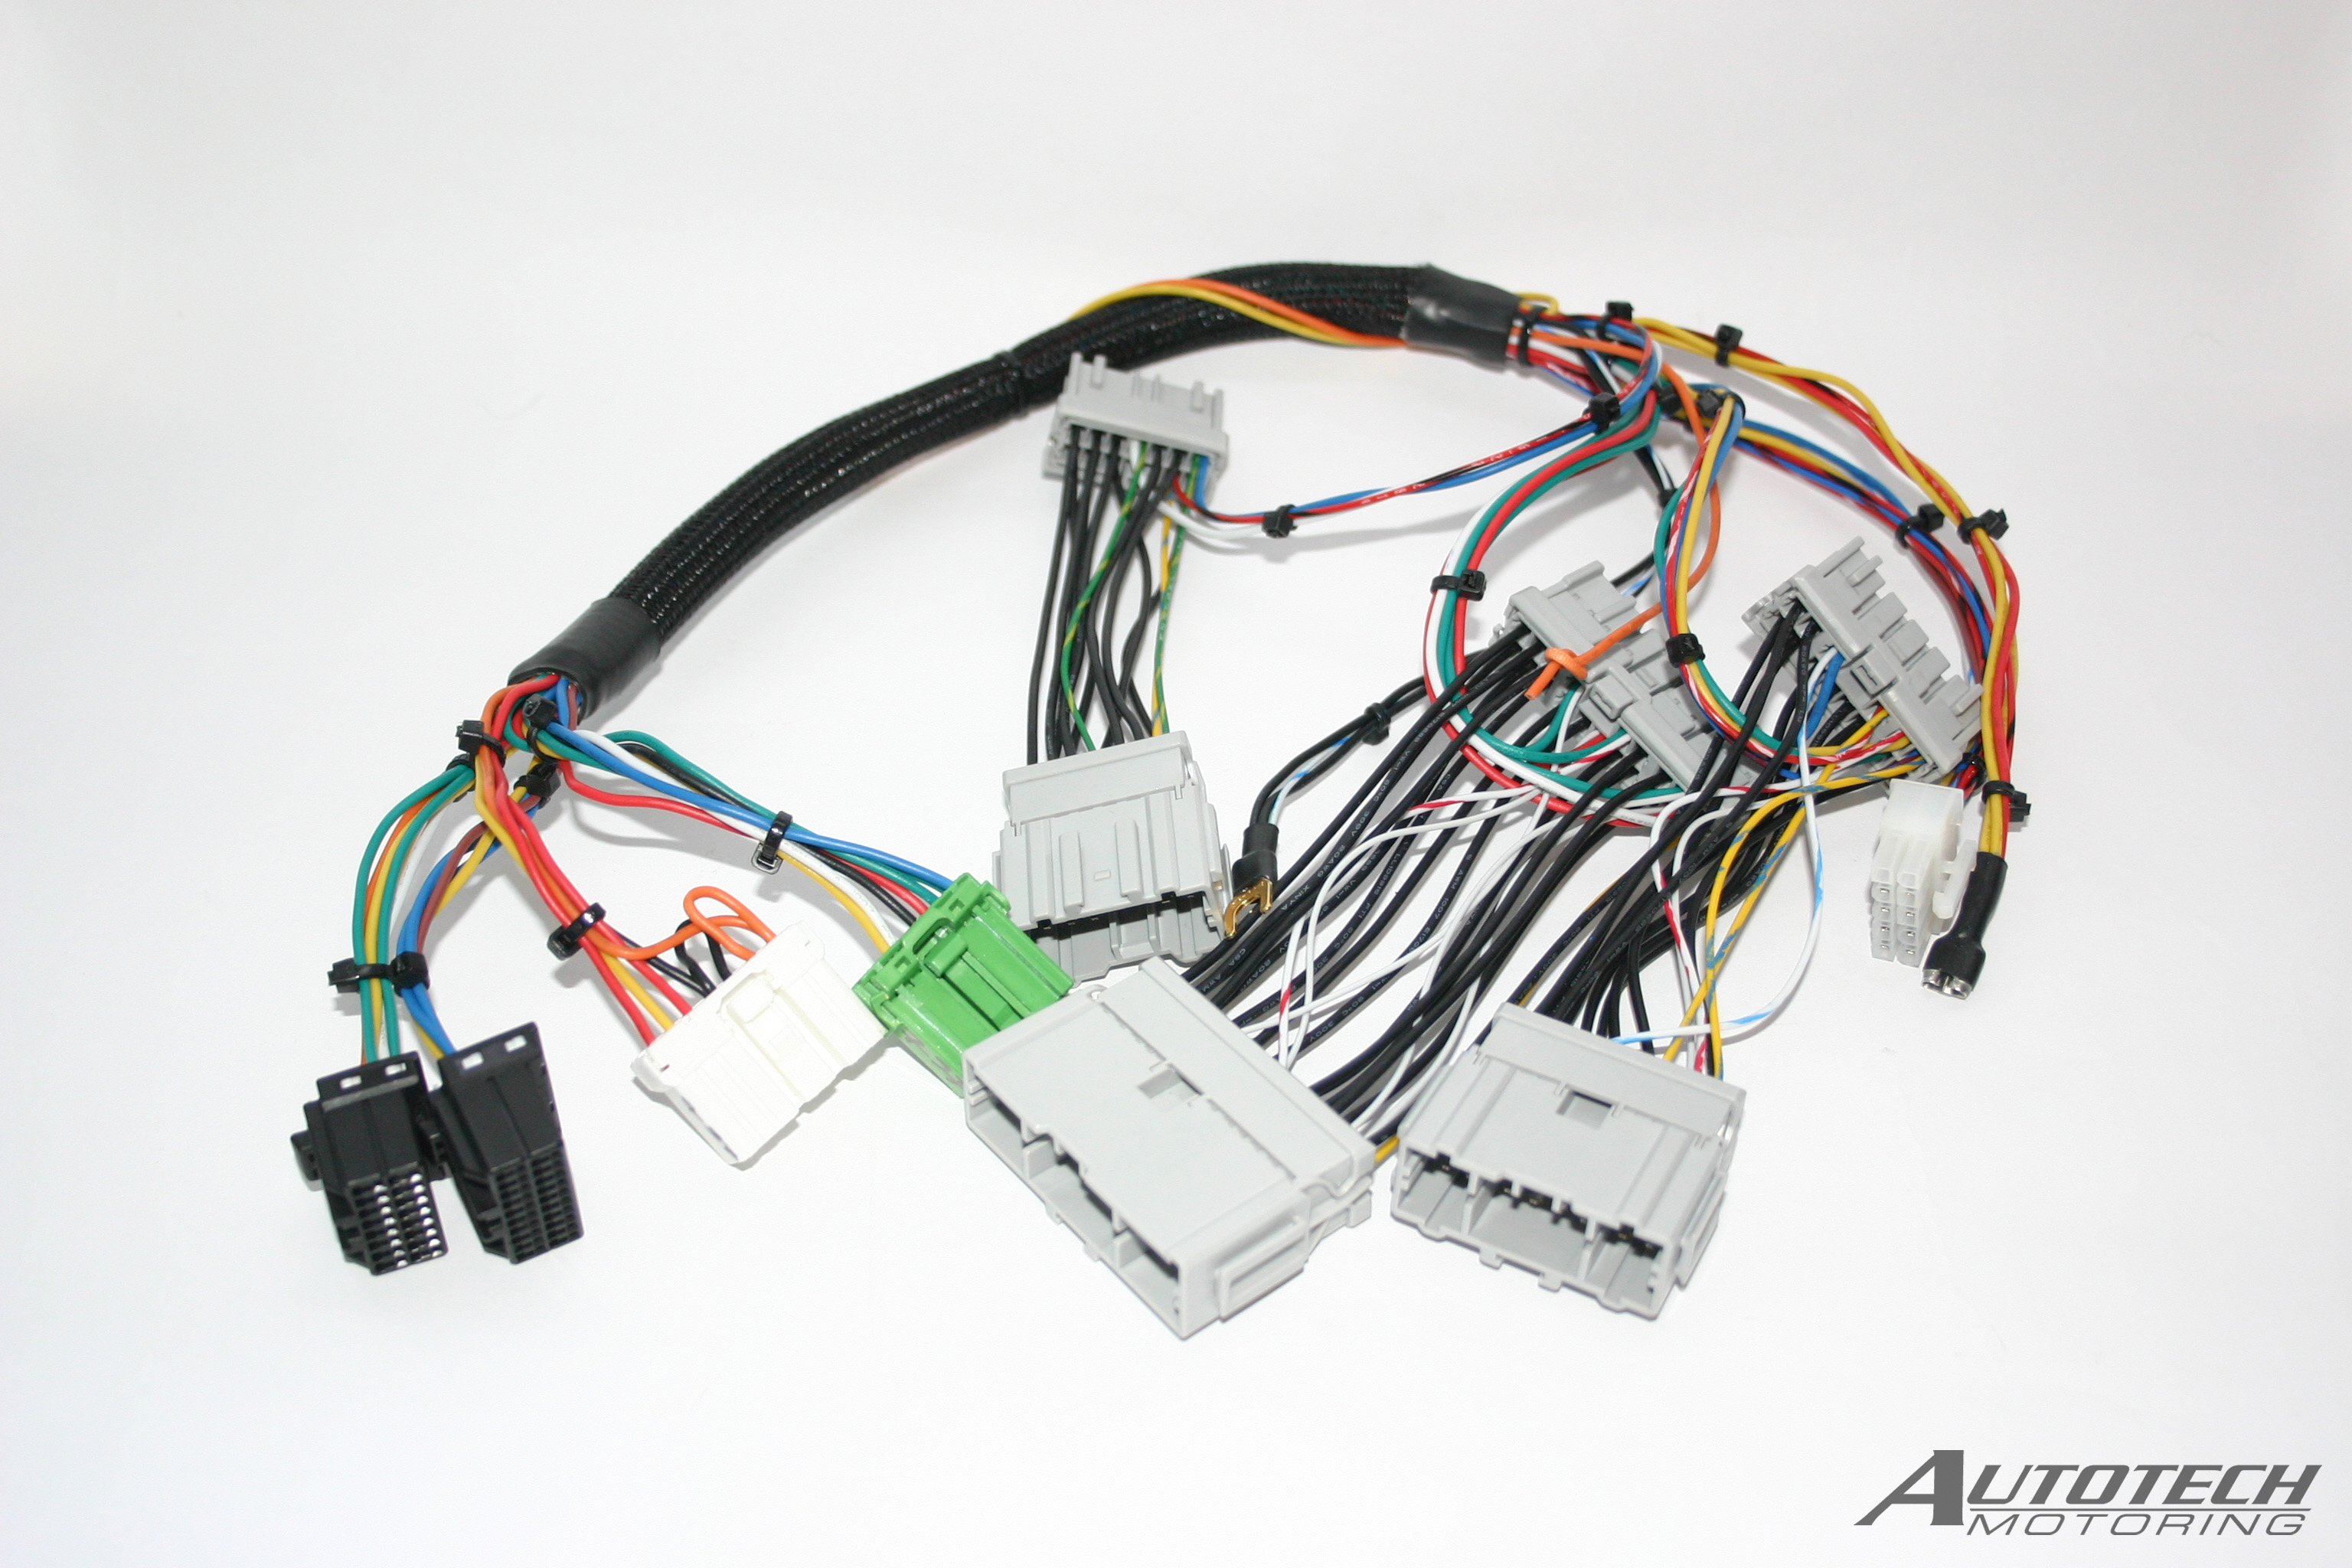 s2000 cluster conversion harness wiring autotech motoring